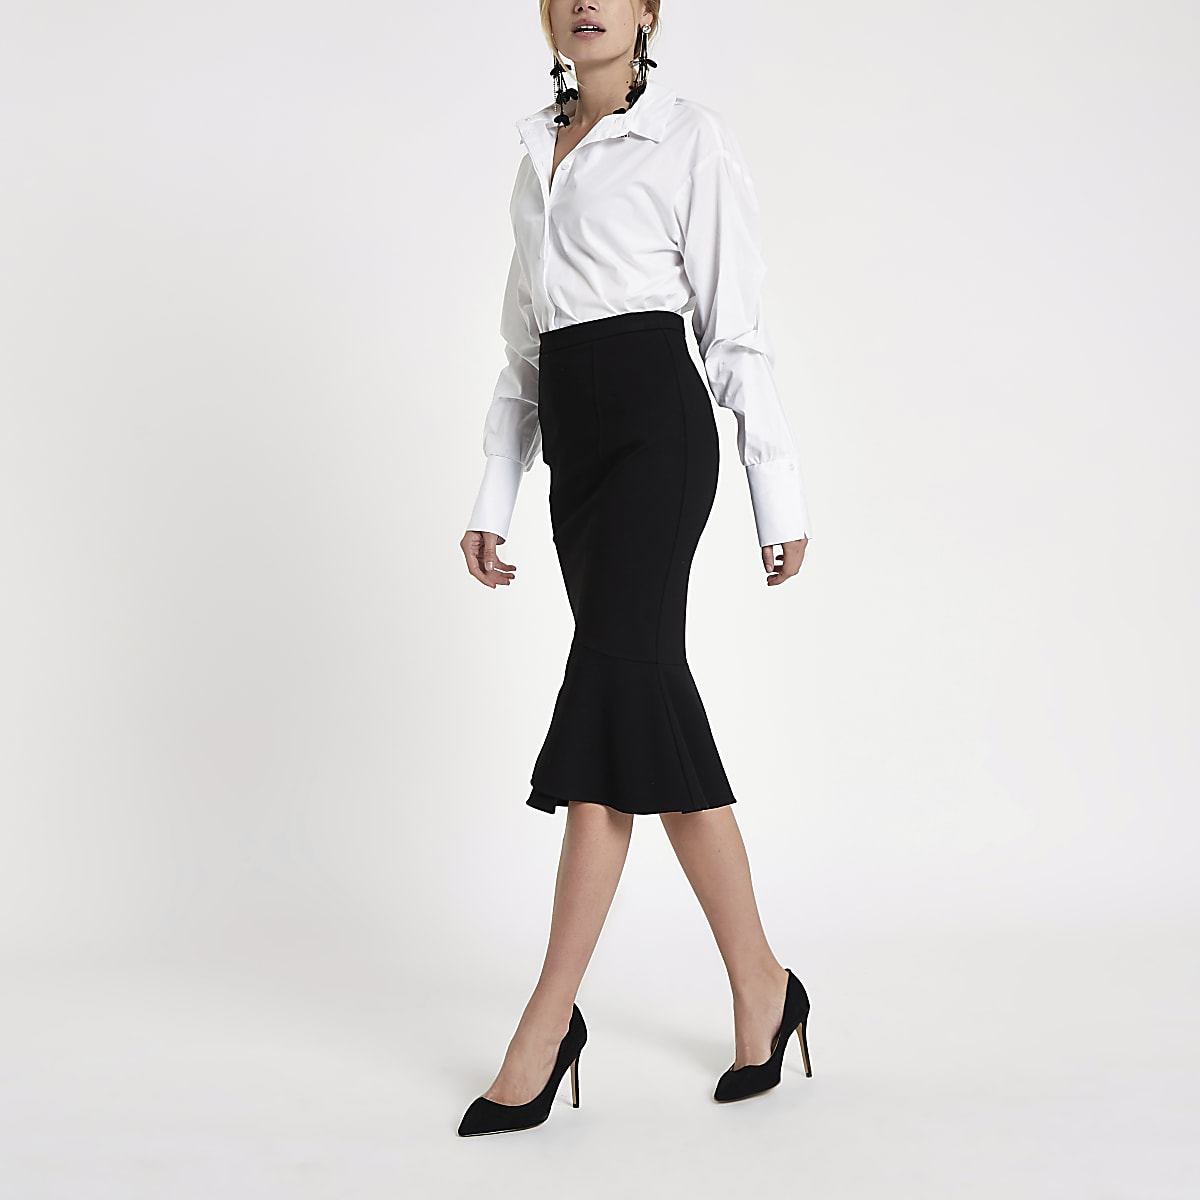 Black peplum hem pencil skirt